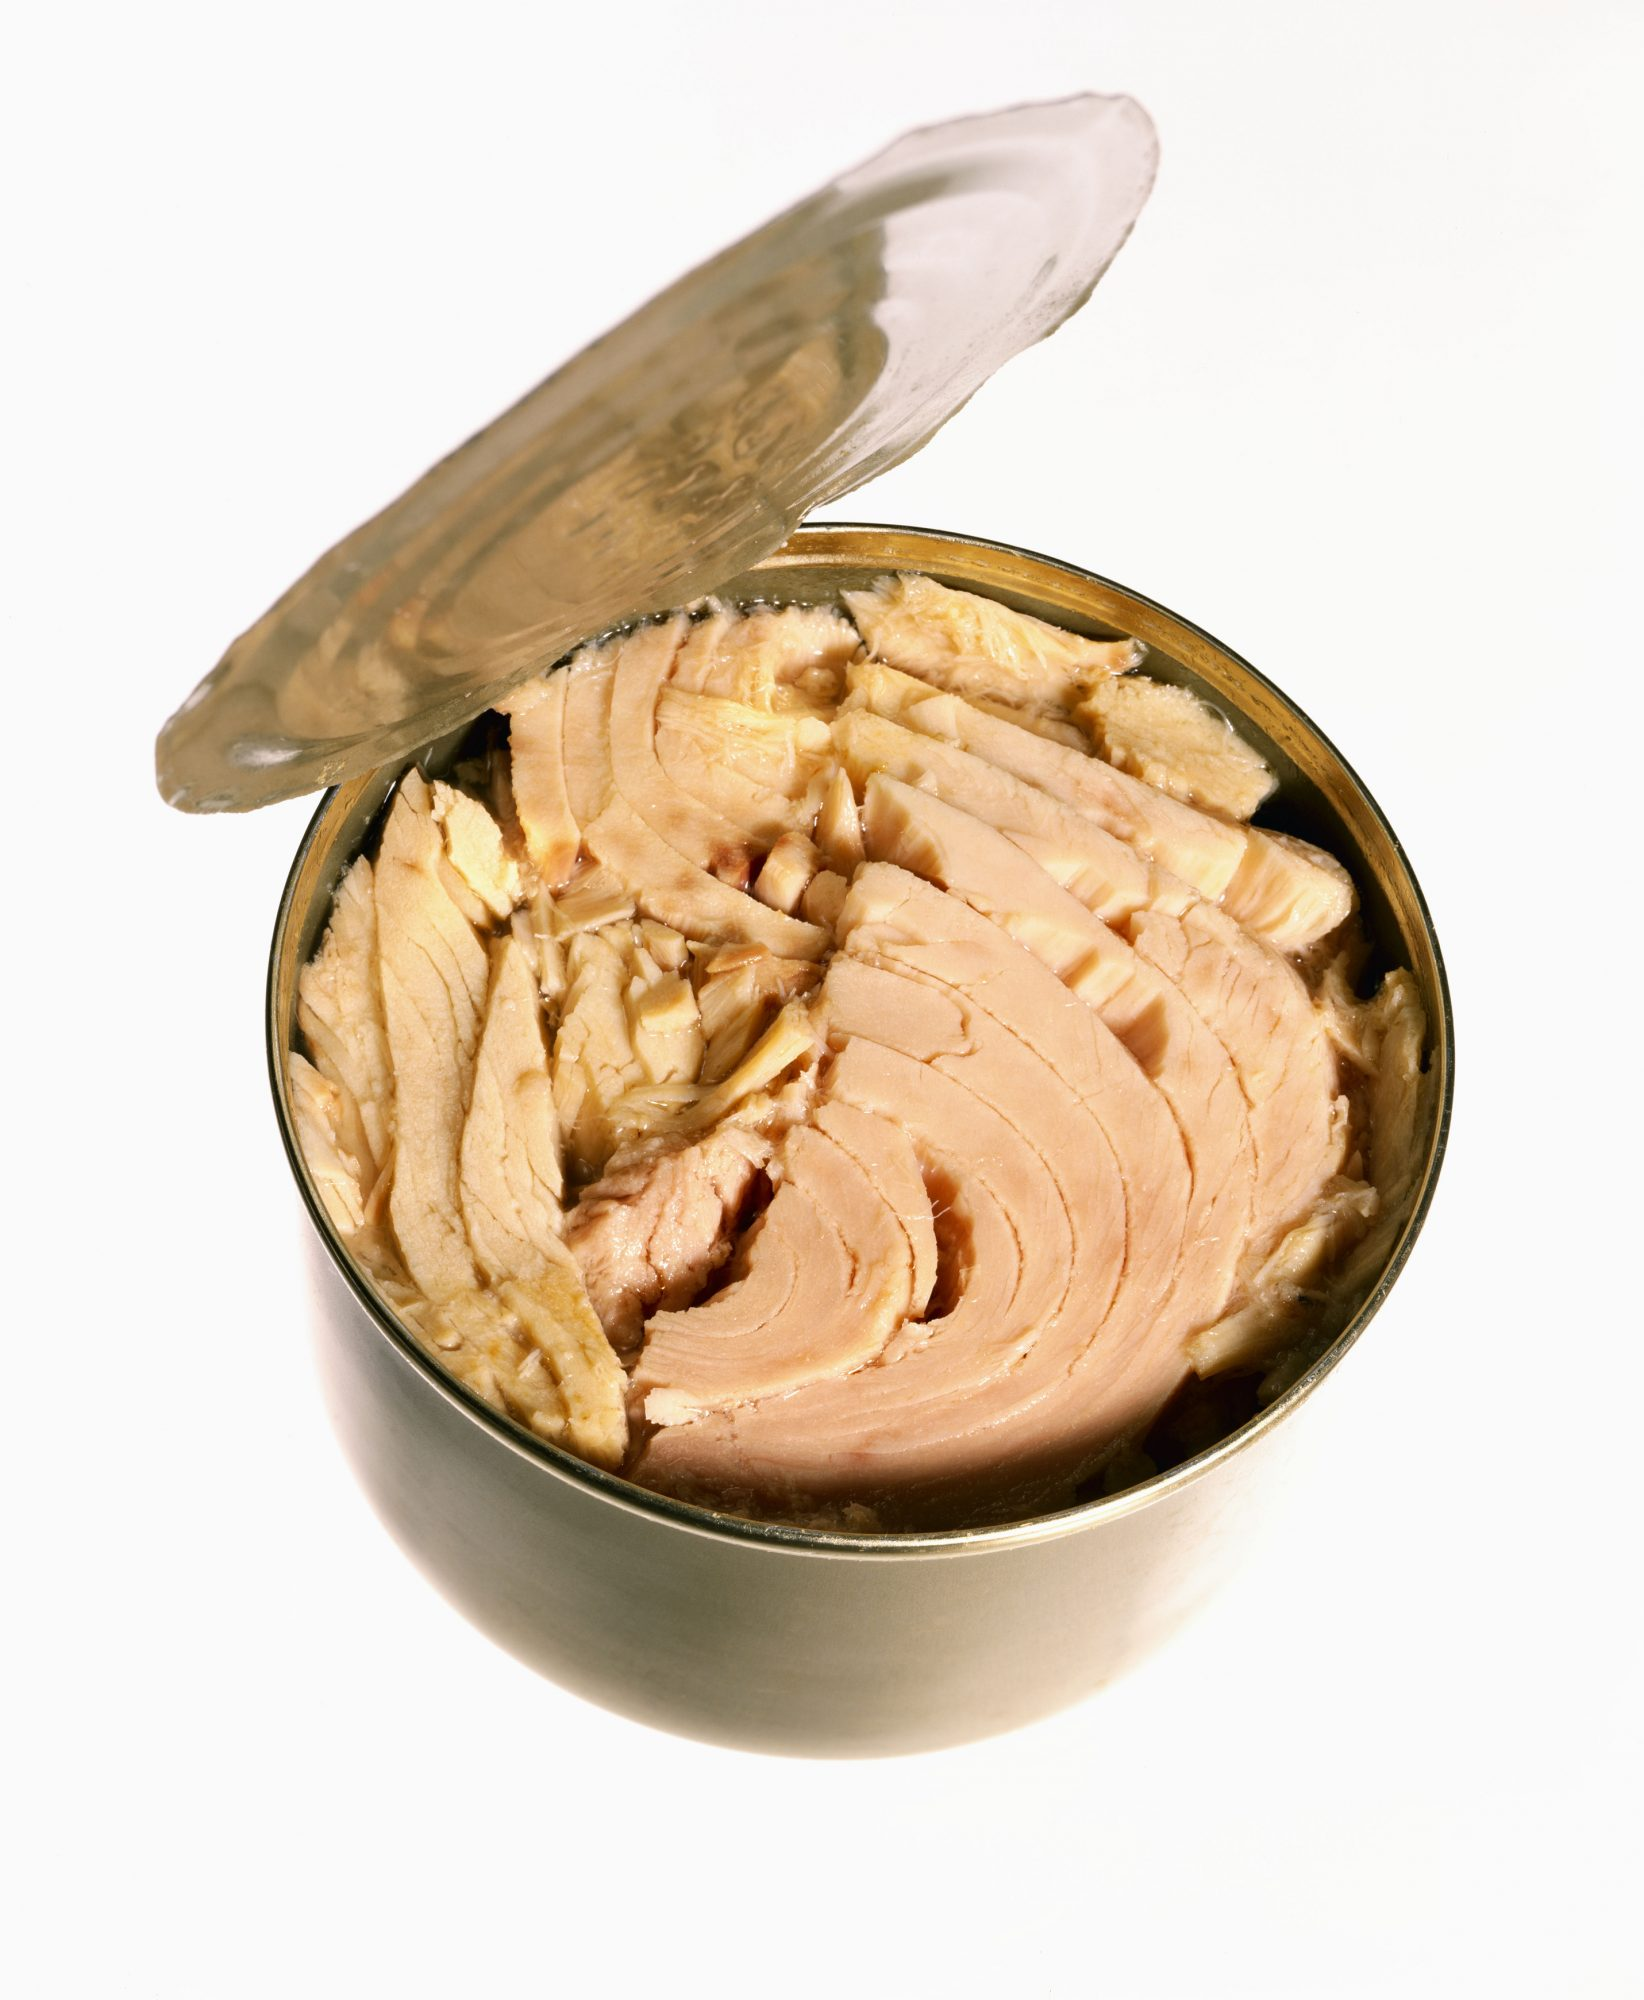 Getty Canned Tuna Image